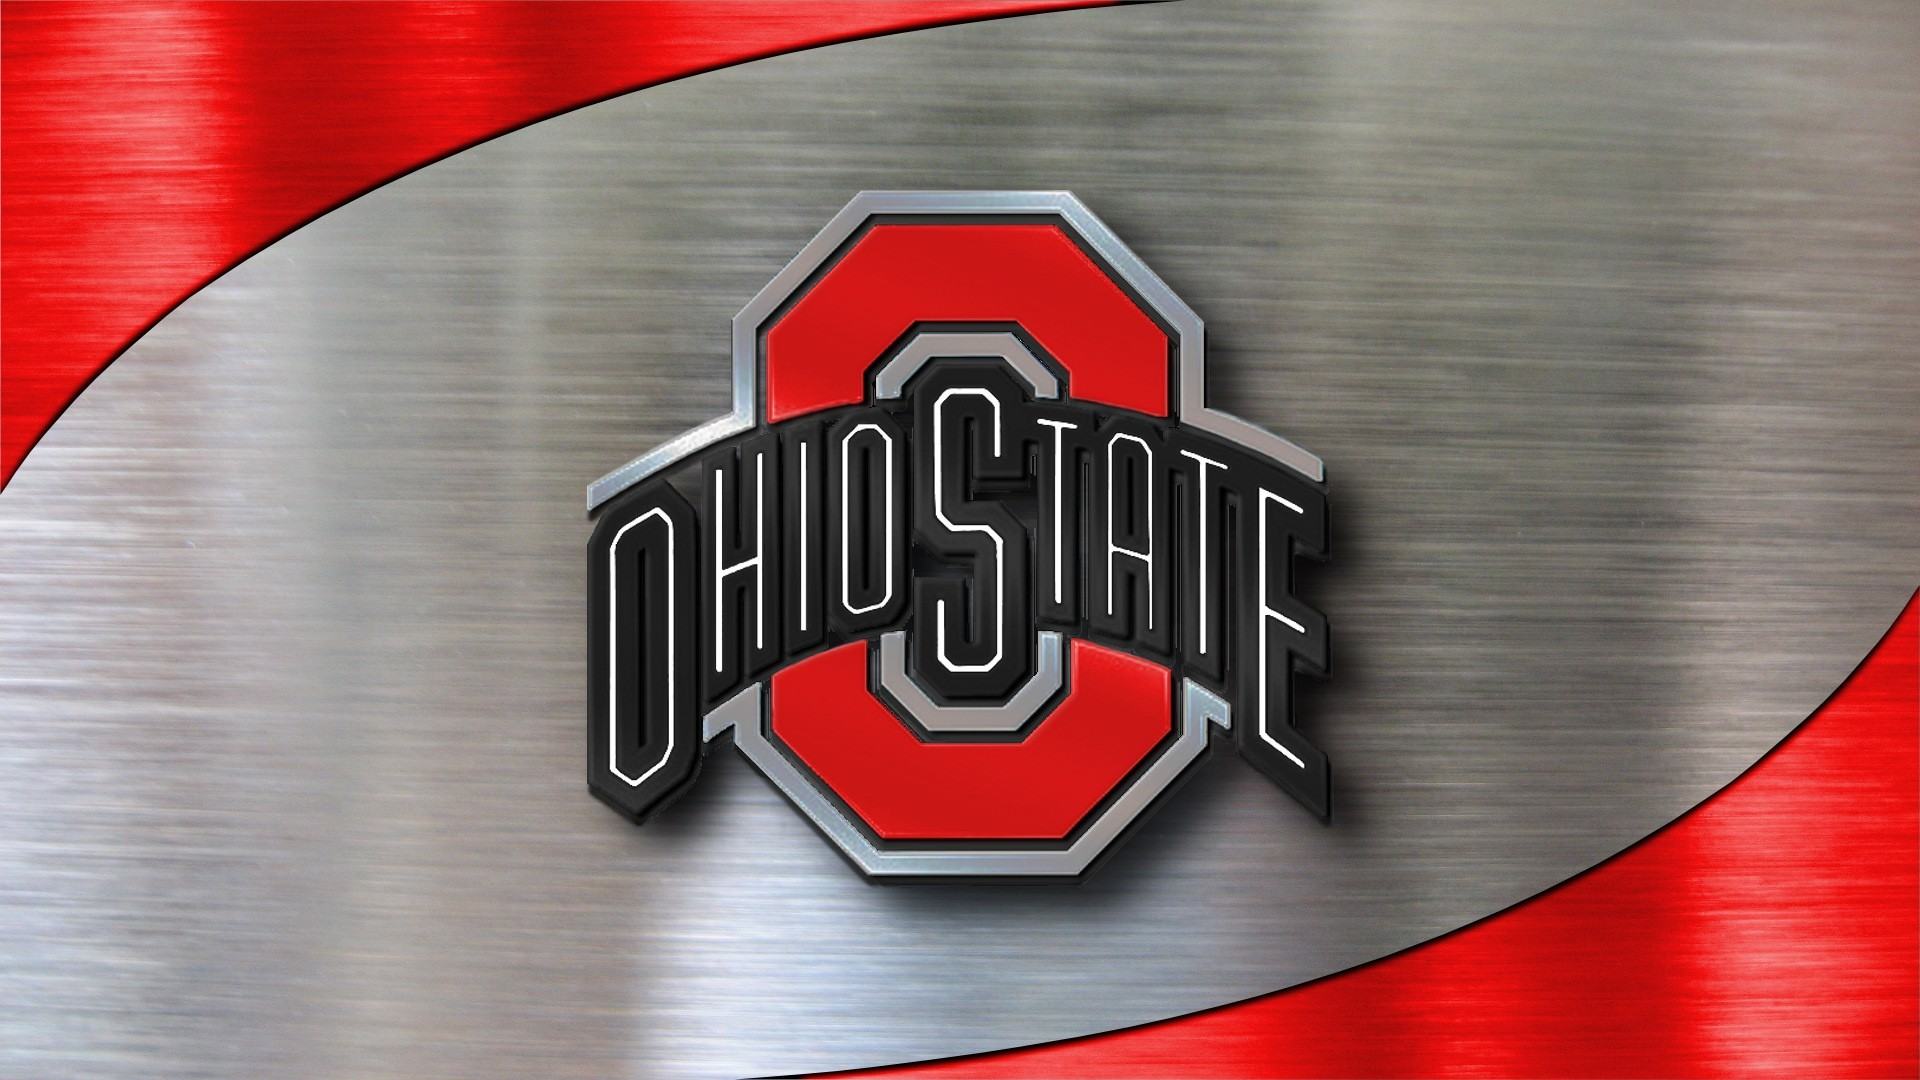 … Best Ohio State Football Wallpapers Wallpaper Ideas On WorldWarix.Com  Find and Save Ideas about